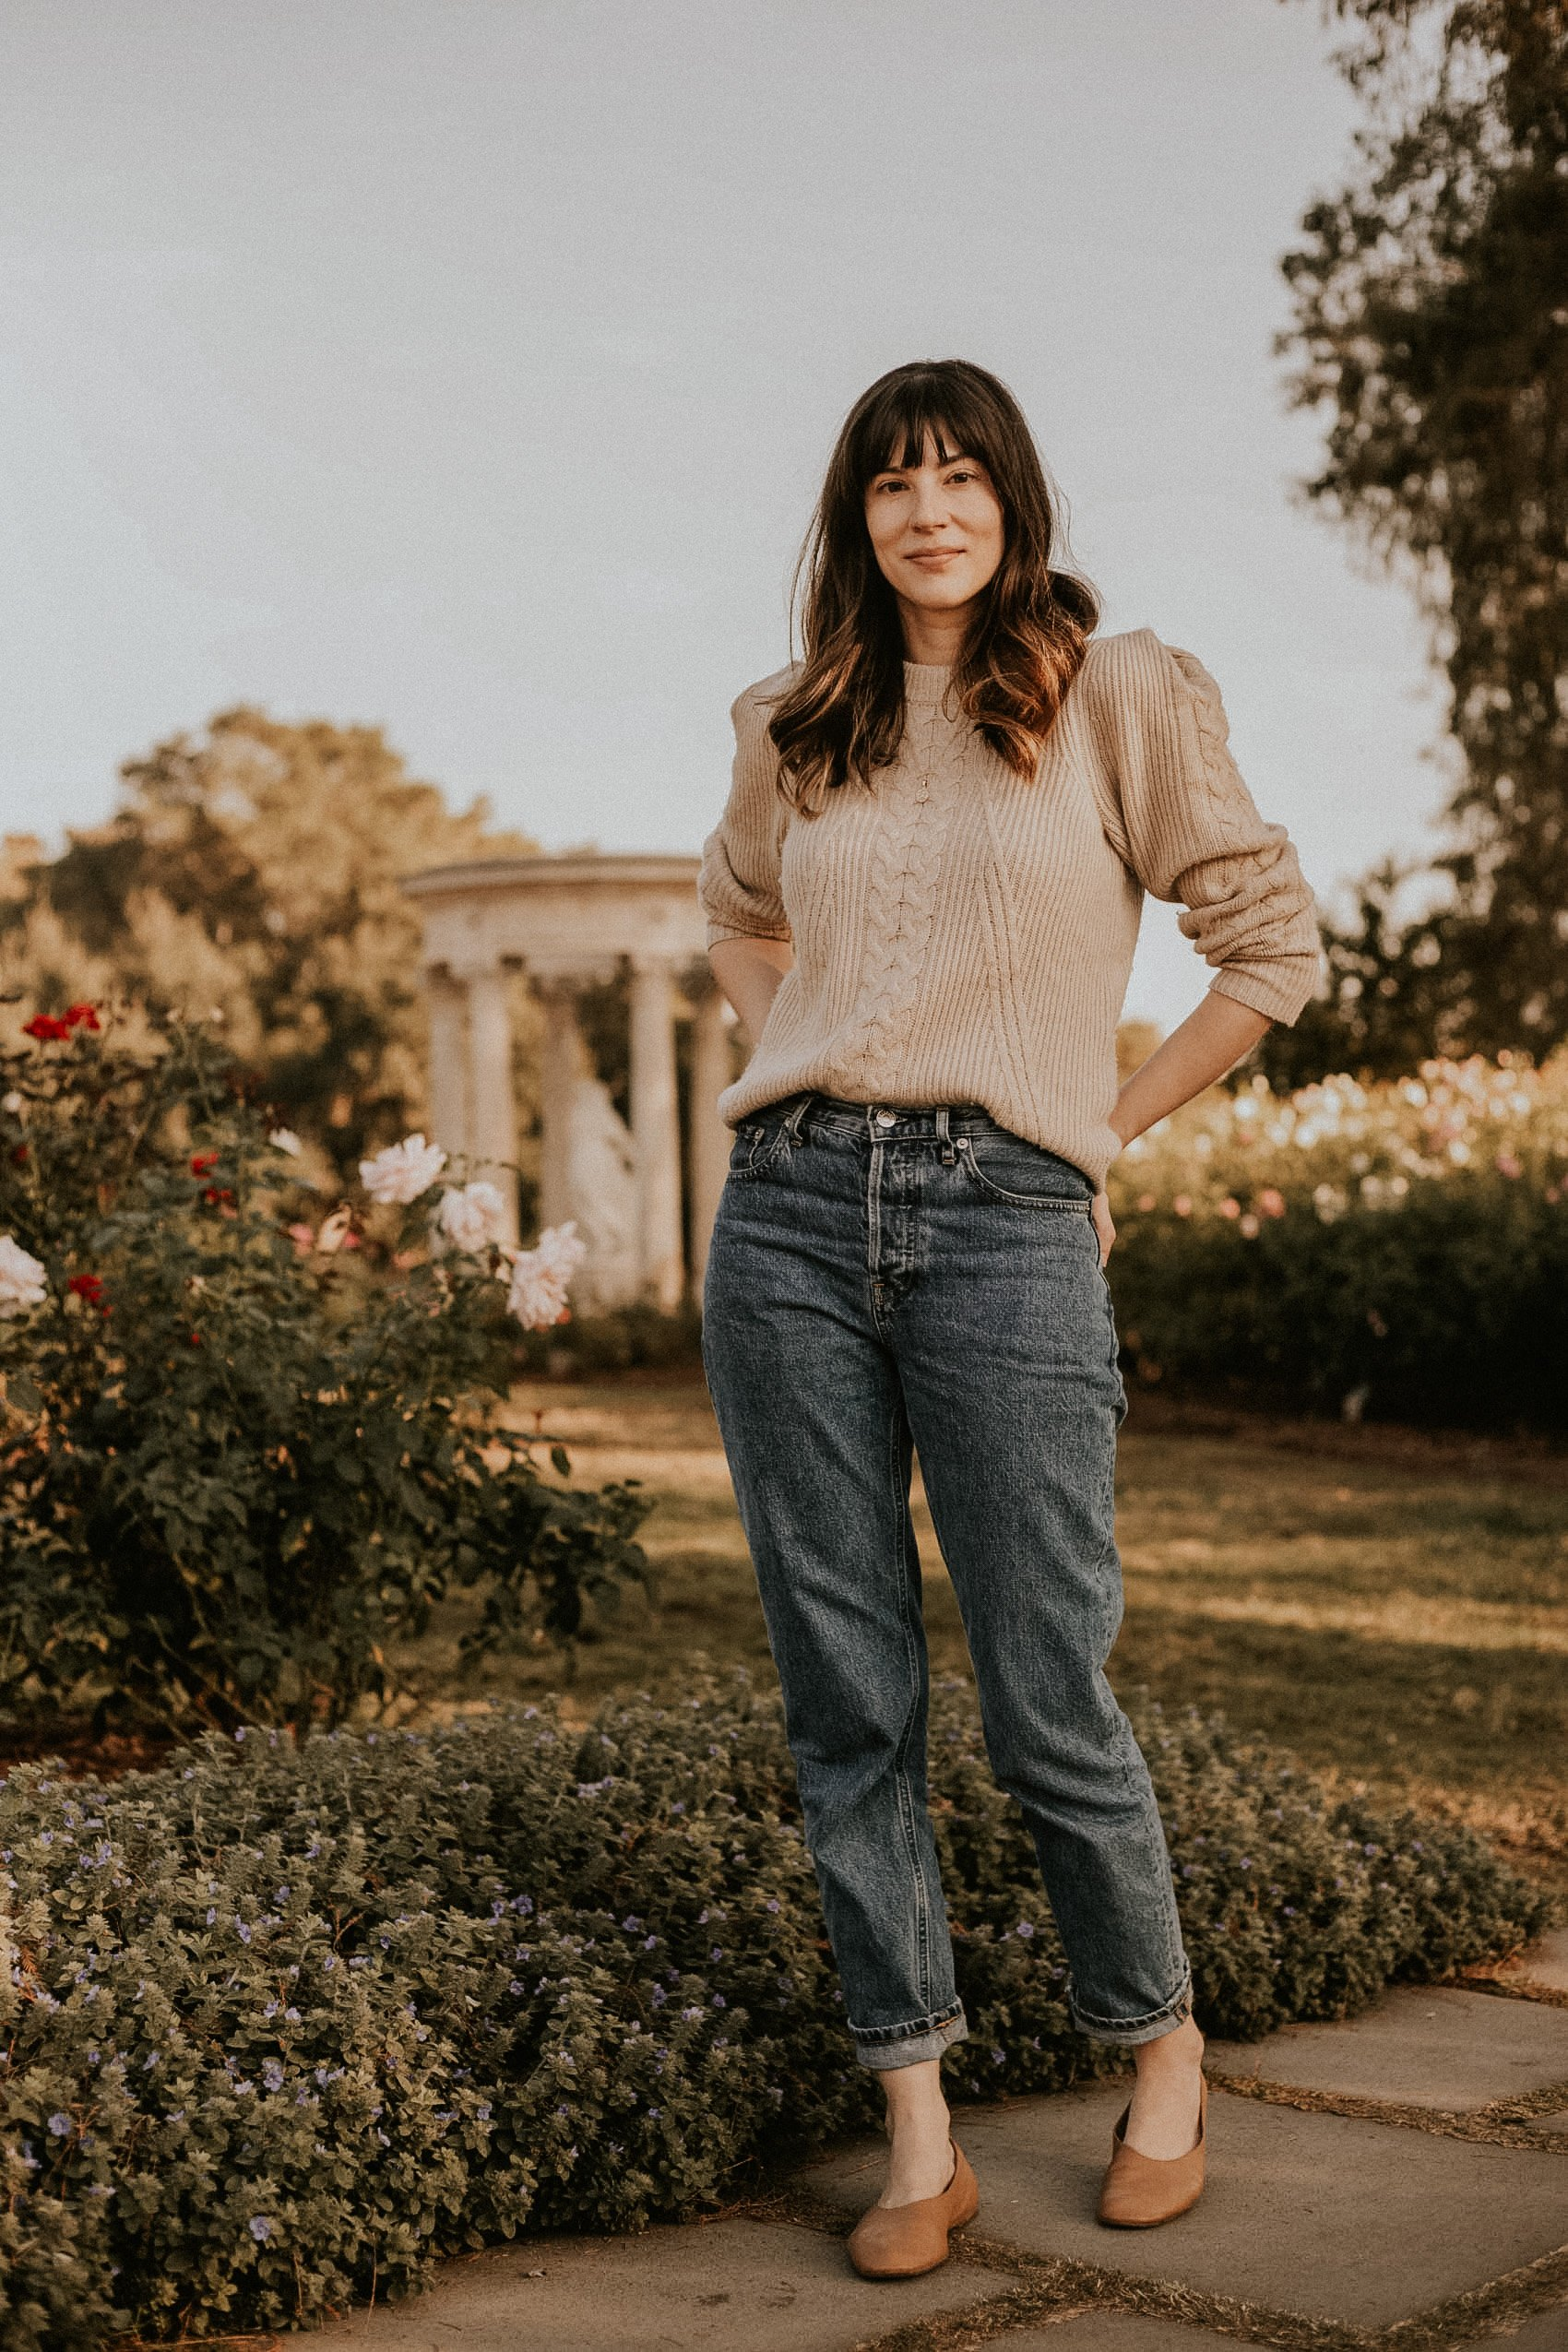 Naadam Cable Knit Sweater with Everlane 90s Cheeky Jeans